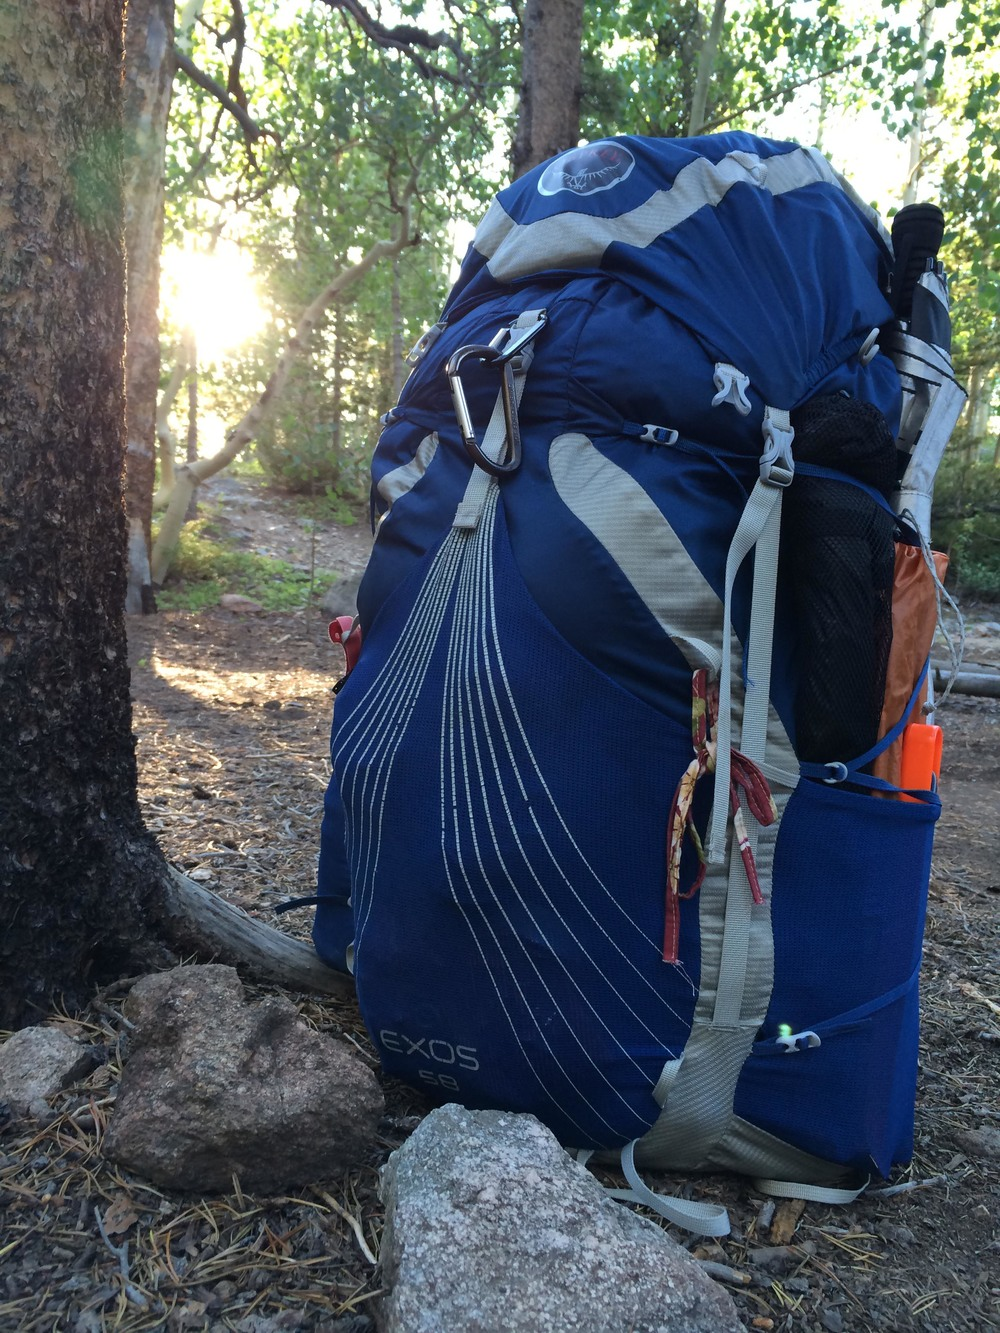 My trusty Osprey pack. PHOTO BY WILLOW BELDEN